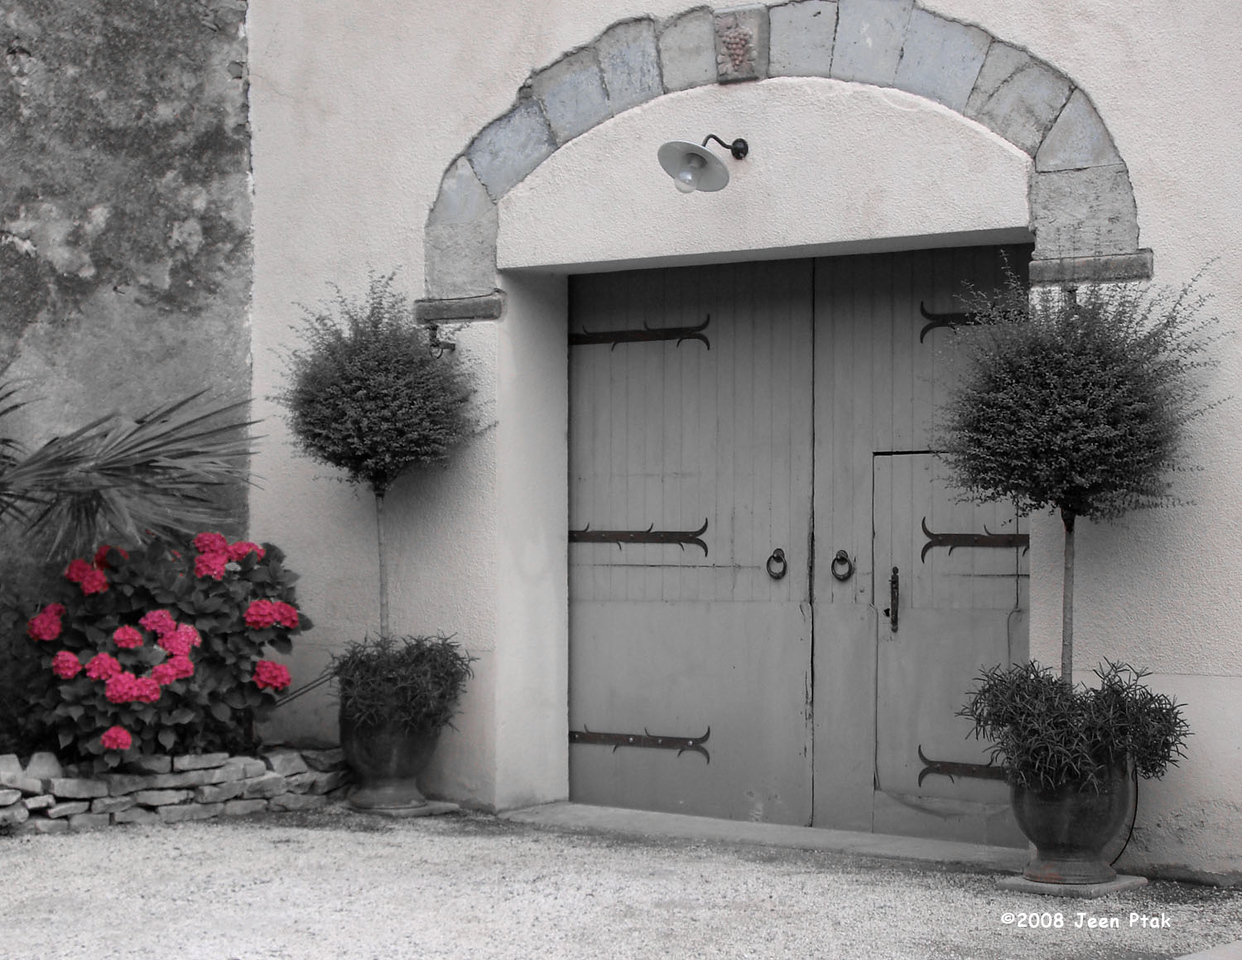 Tweaked B&W - Residential Entrance, Carcassonne, France